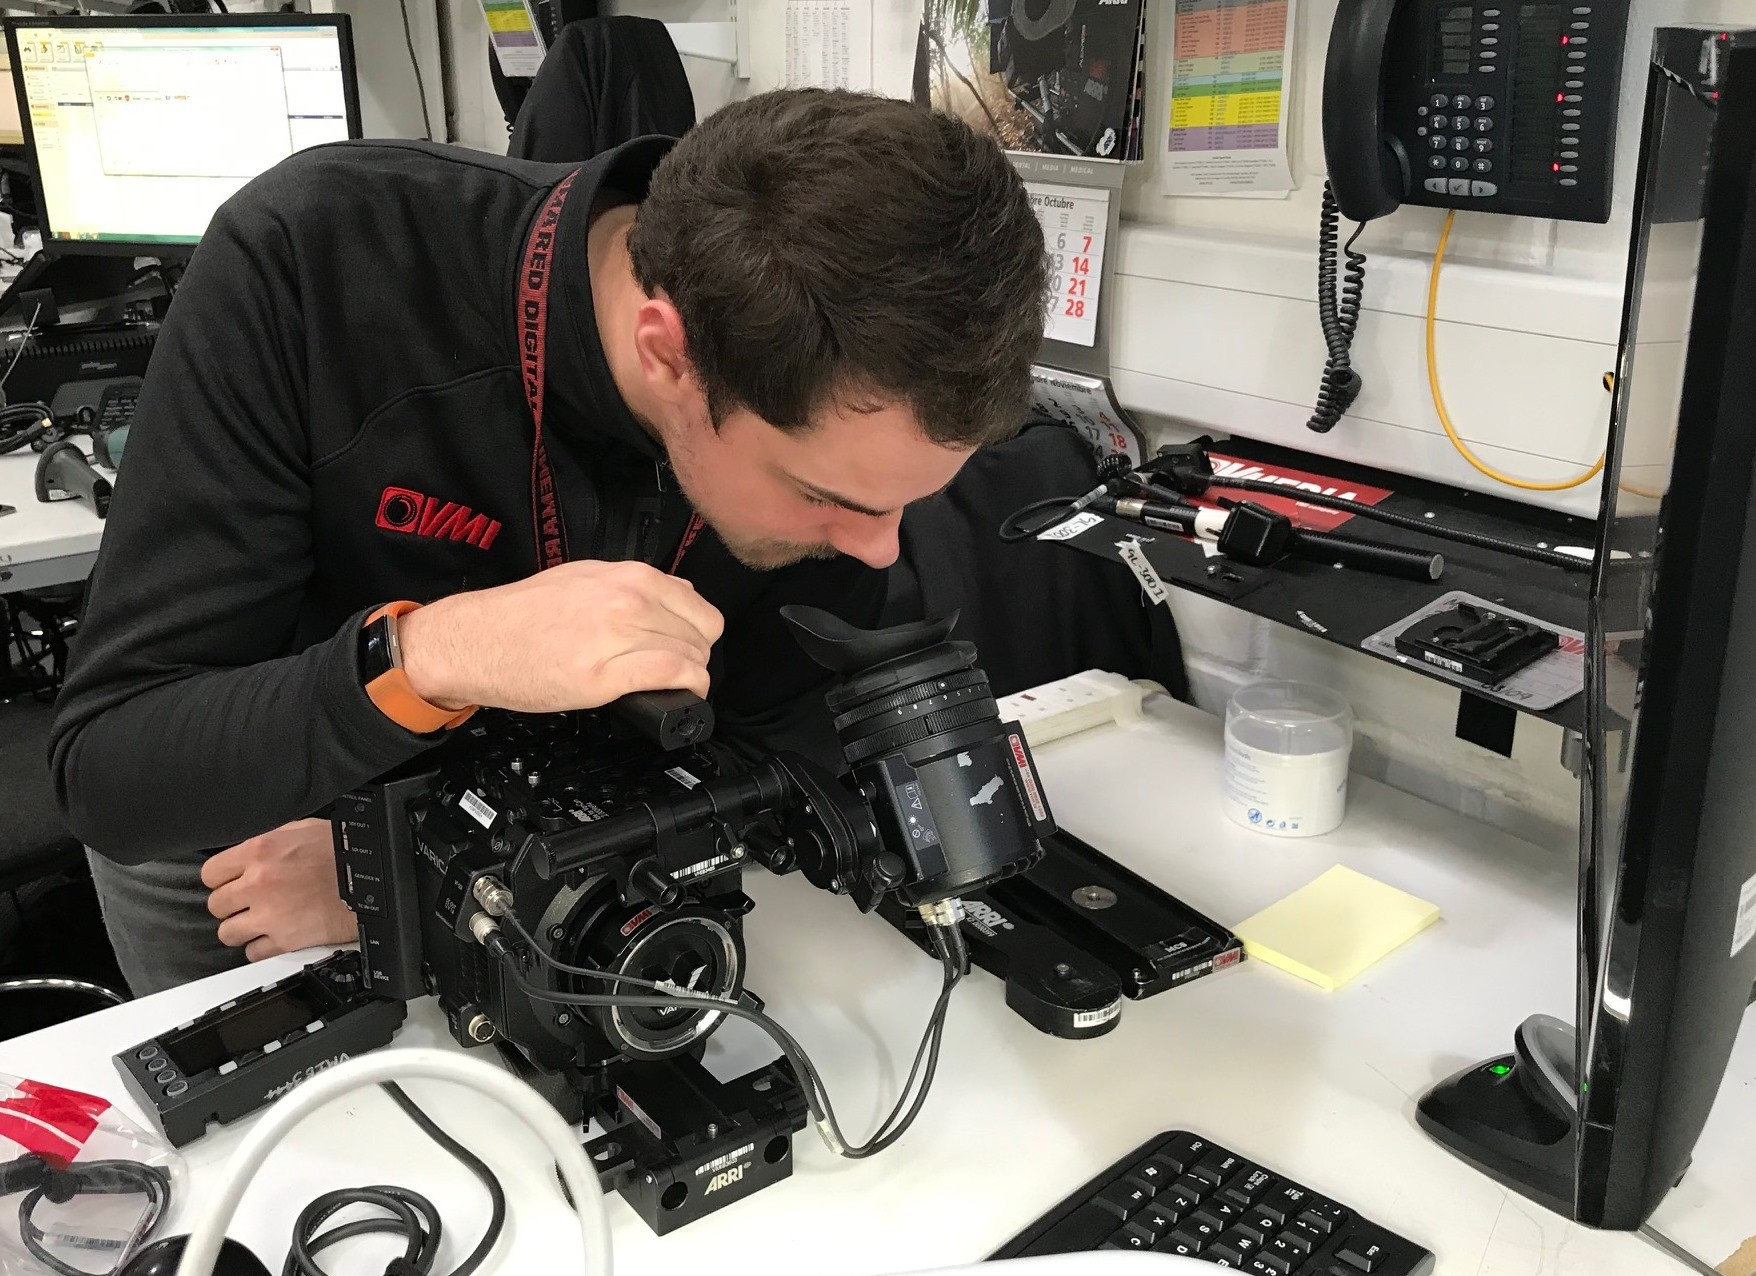 VMI helping to launch UK's first Apprenticeship Standard for Camera Technicians